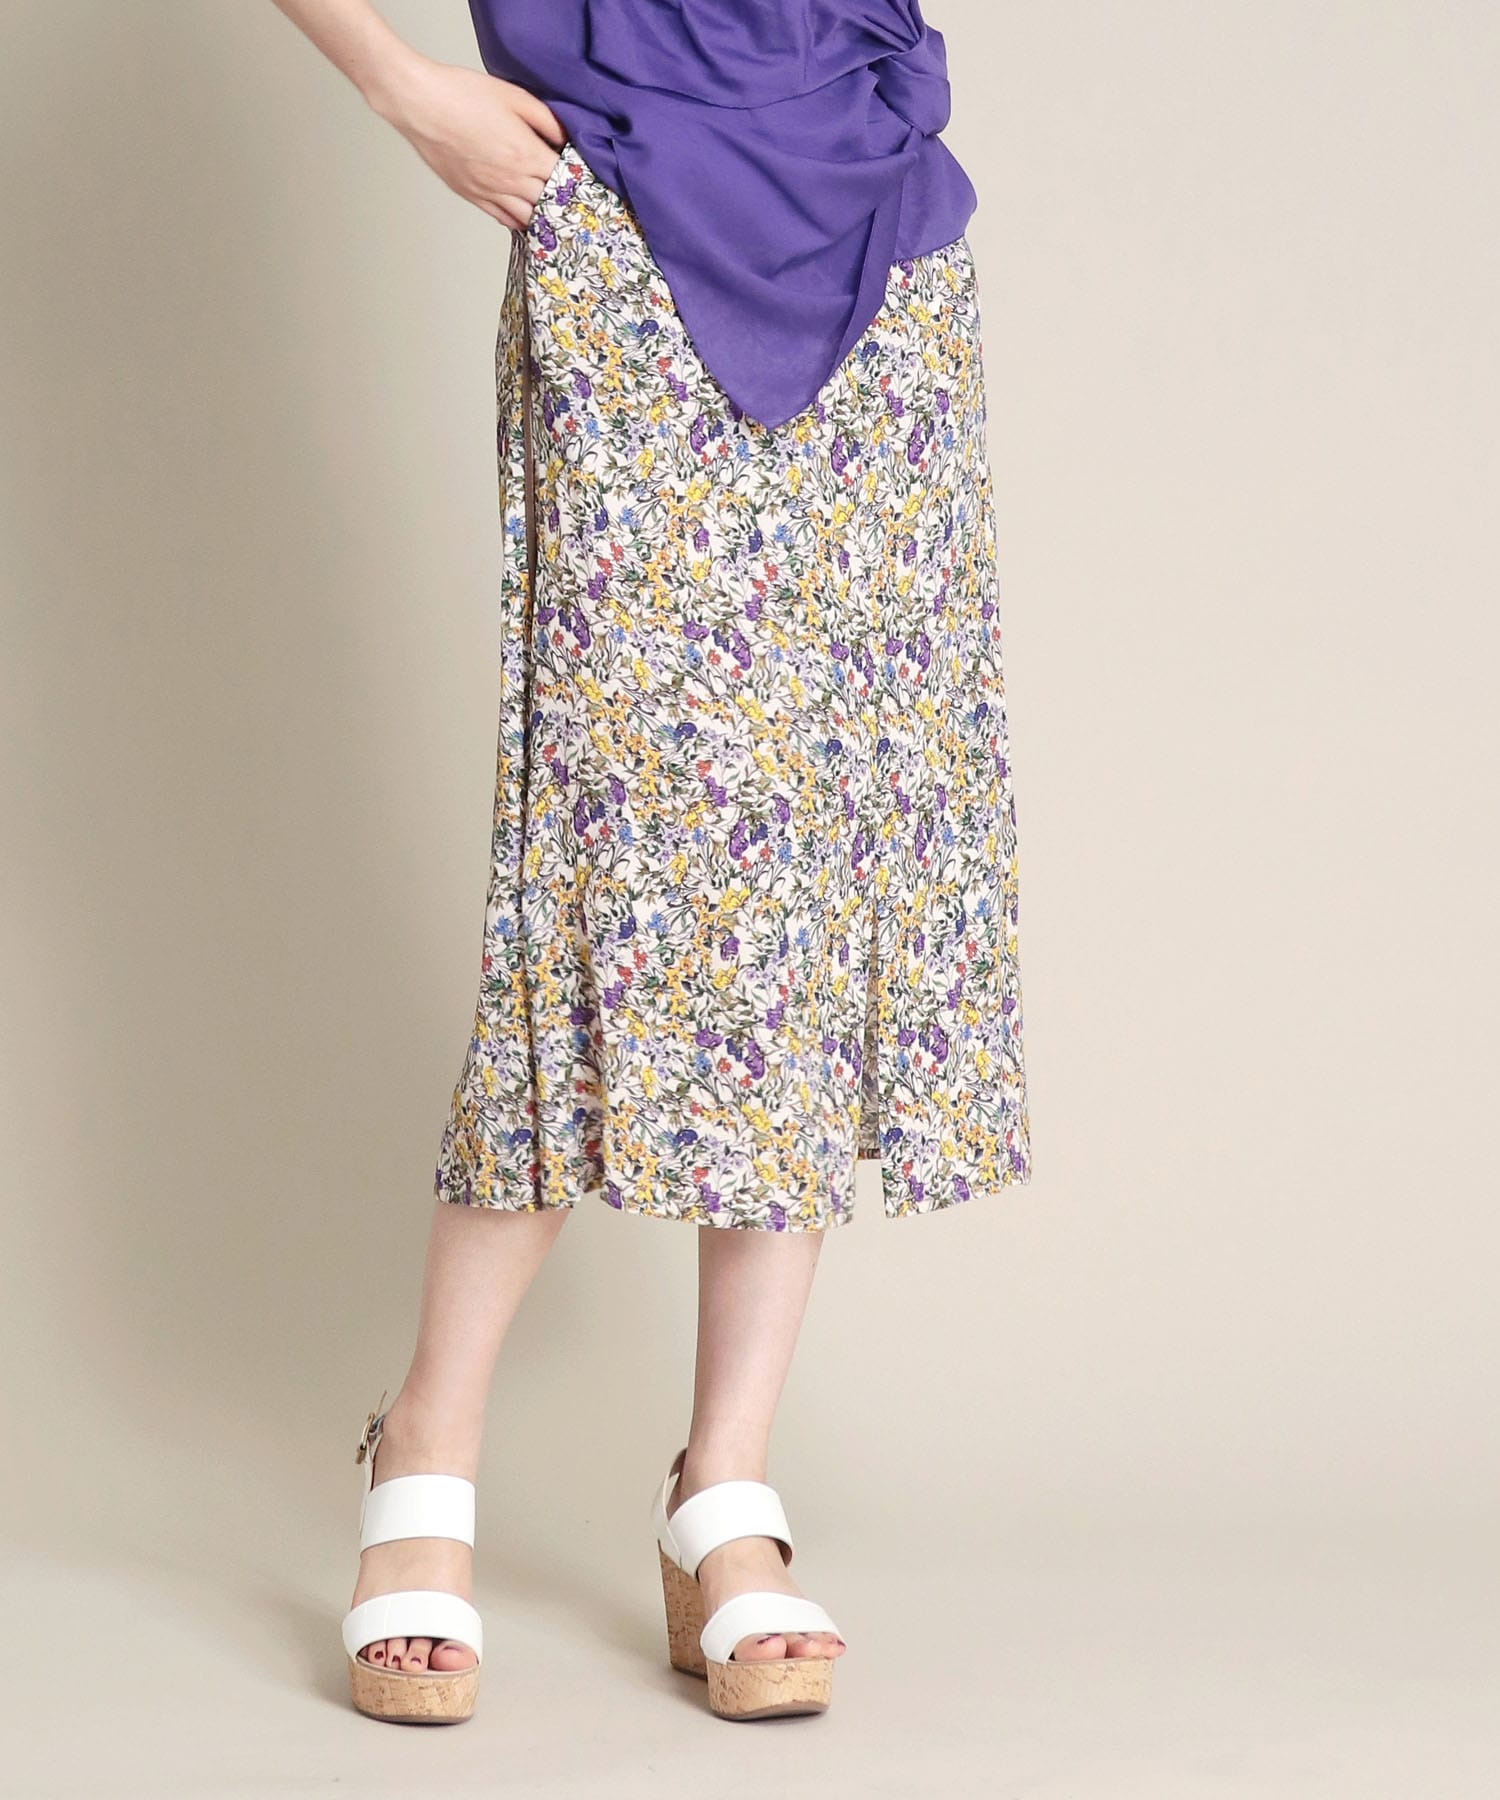 colorful flower print skirt